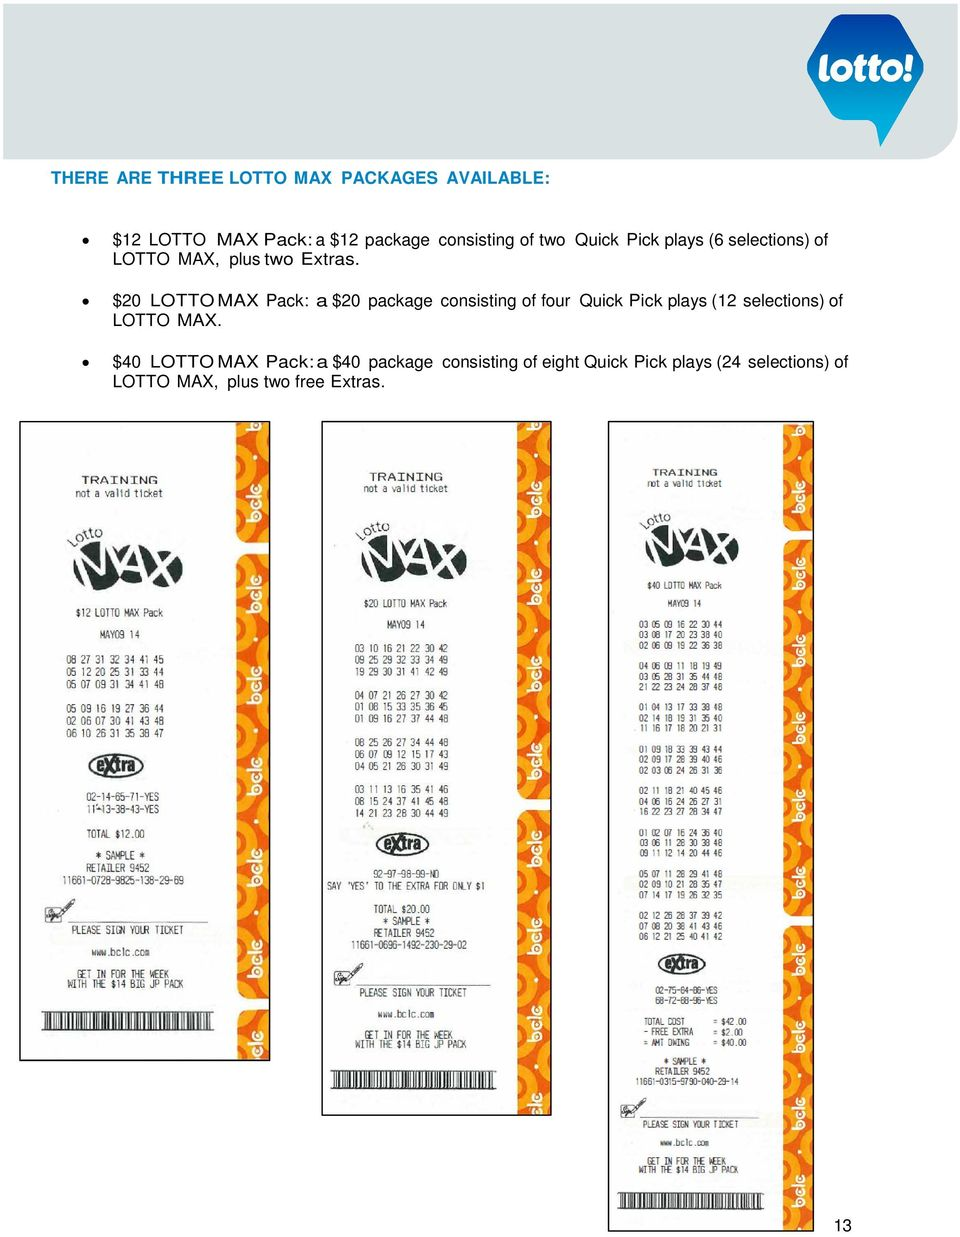 $20 LOTTO MAX Pack: a $20 package consisting of four Quick Pick plays (12 selections) of LOTTO